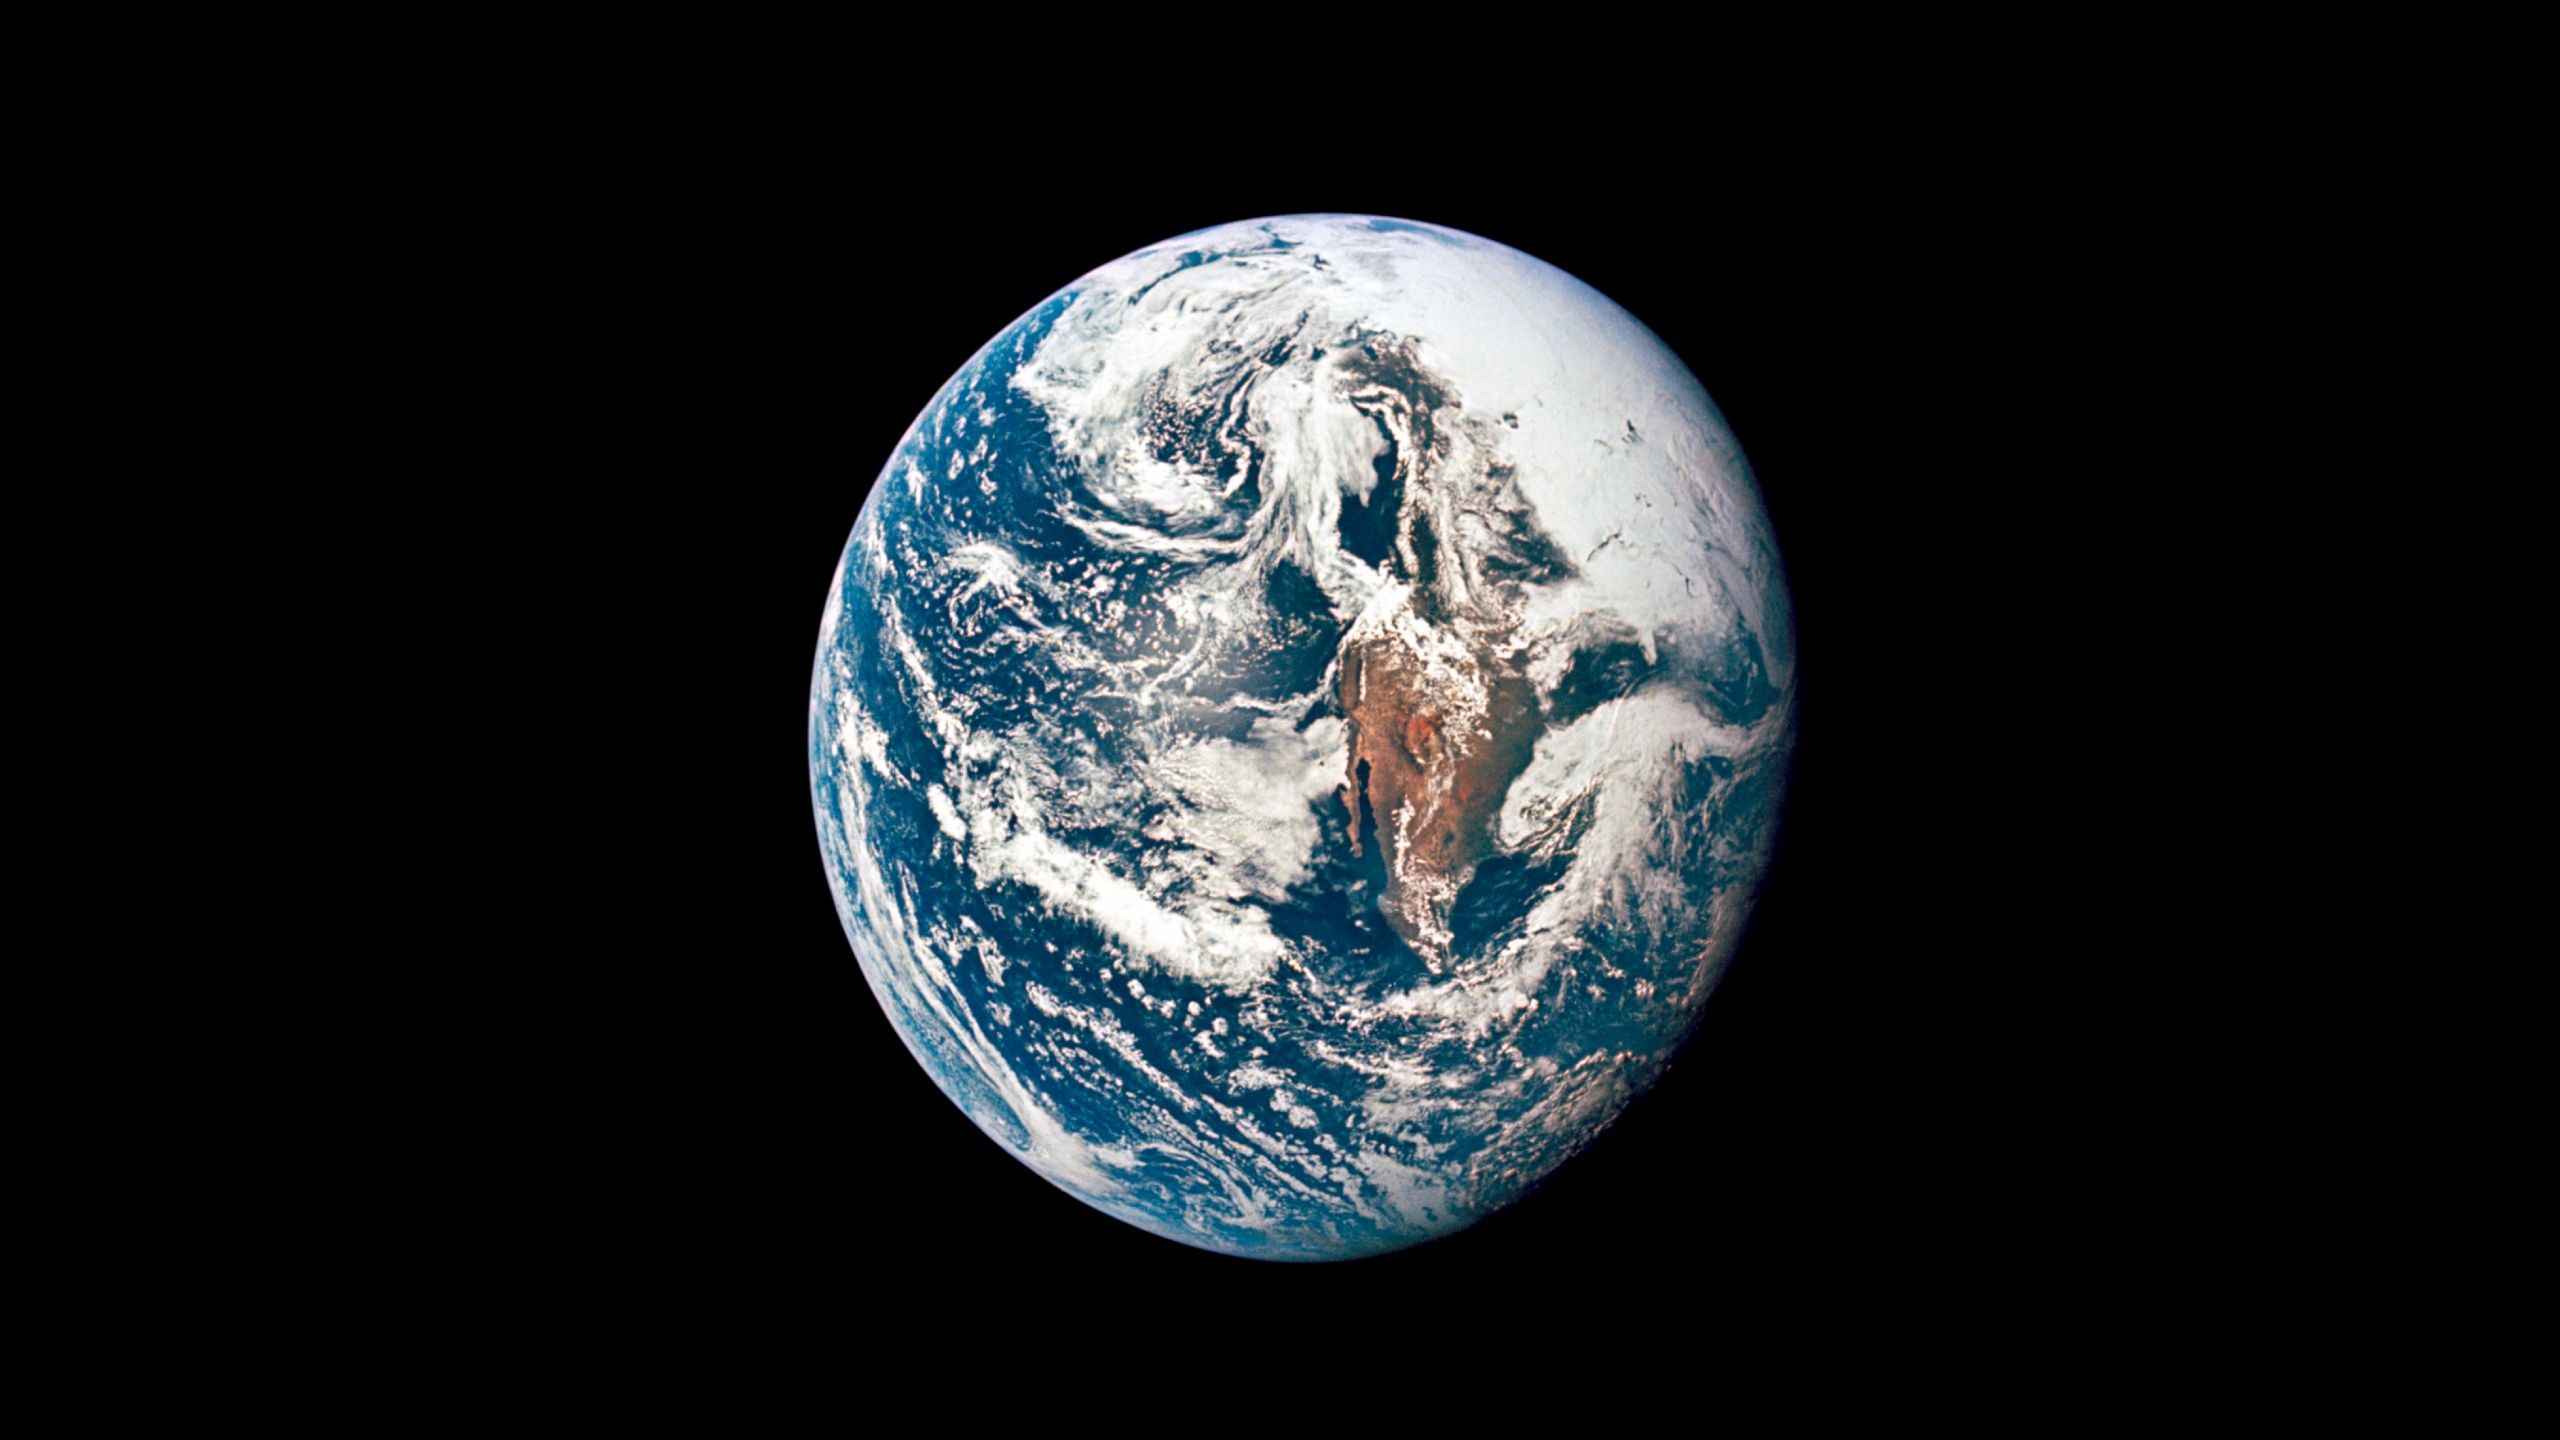 This May 18, 1969 photo made available by NASA shows Earth from 36,000 nautical miles away as photographed from the Apollo 10 spacecraft during its trans-lunar journey toward the moon. In March 2021, the U.S. space agency announced that new telescope observations have ruled out any chance of the asteroid Apophis colliding with Earth in 2068. (NASA via AP)